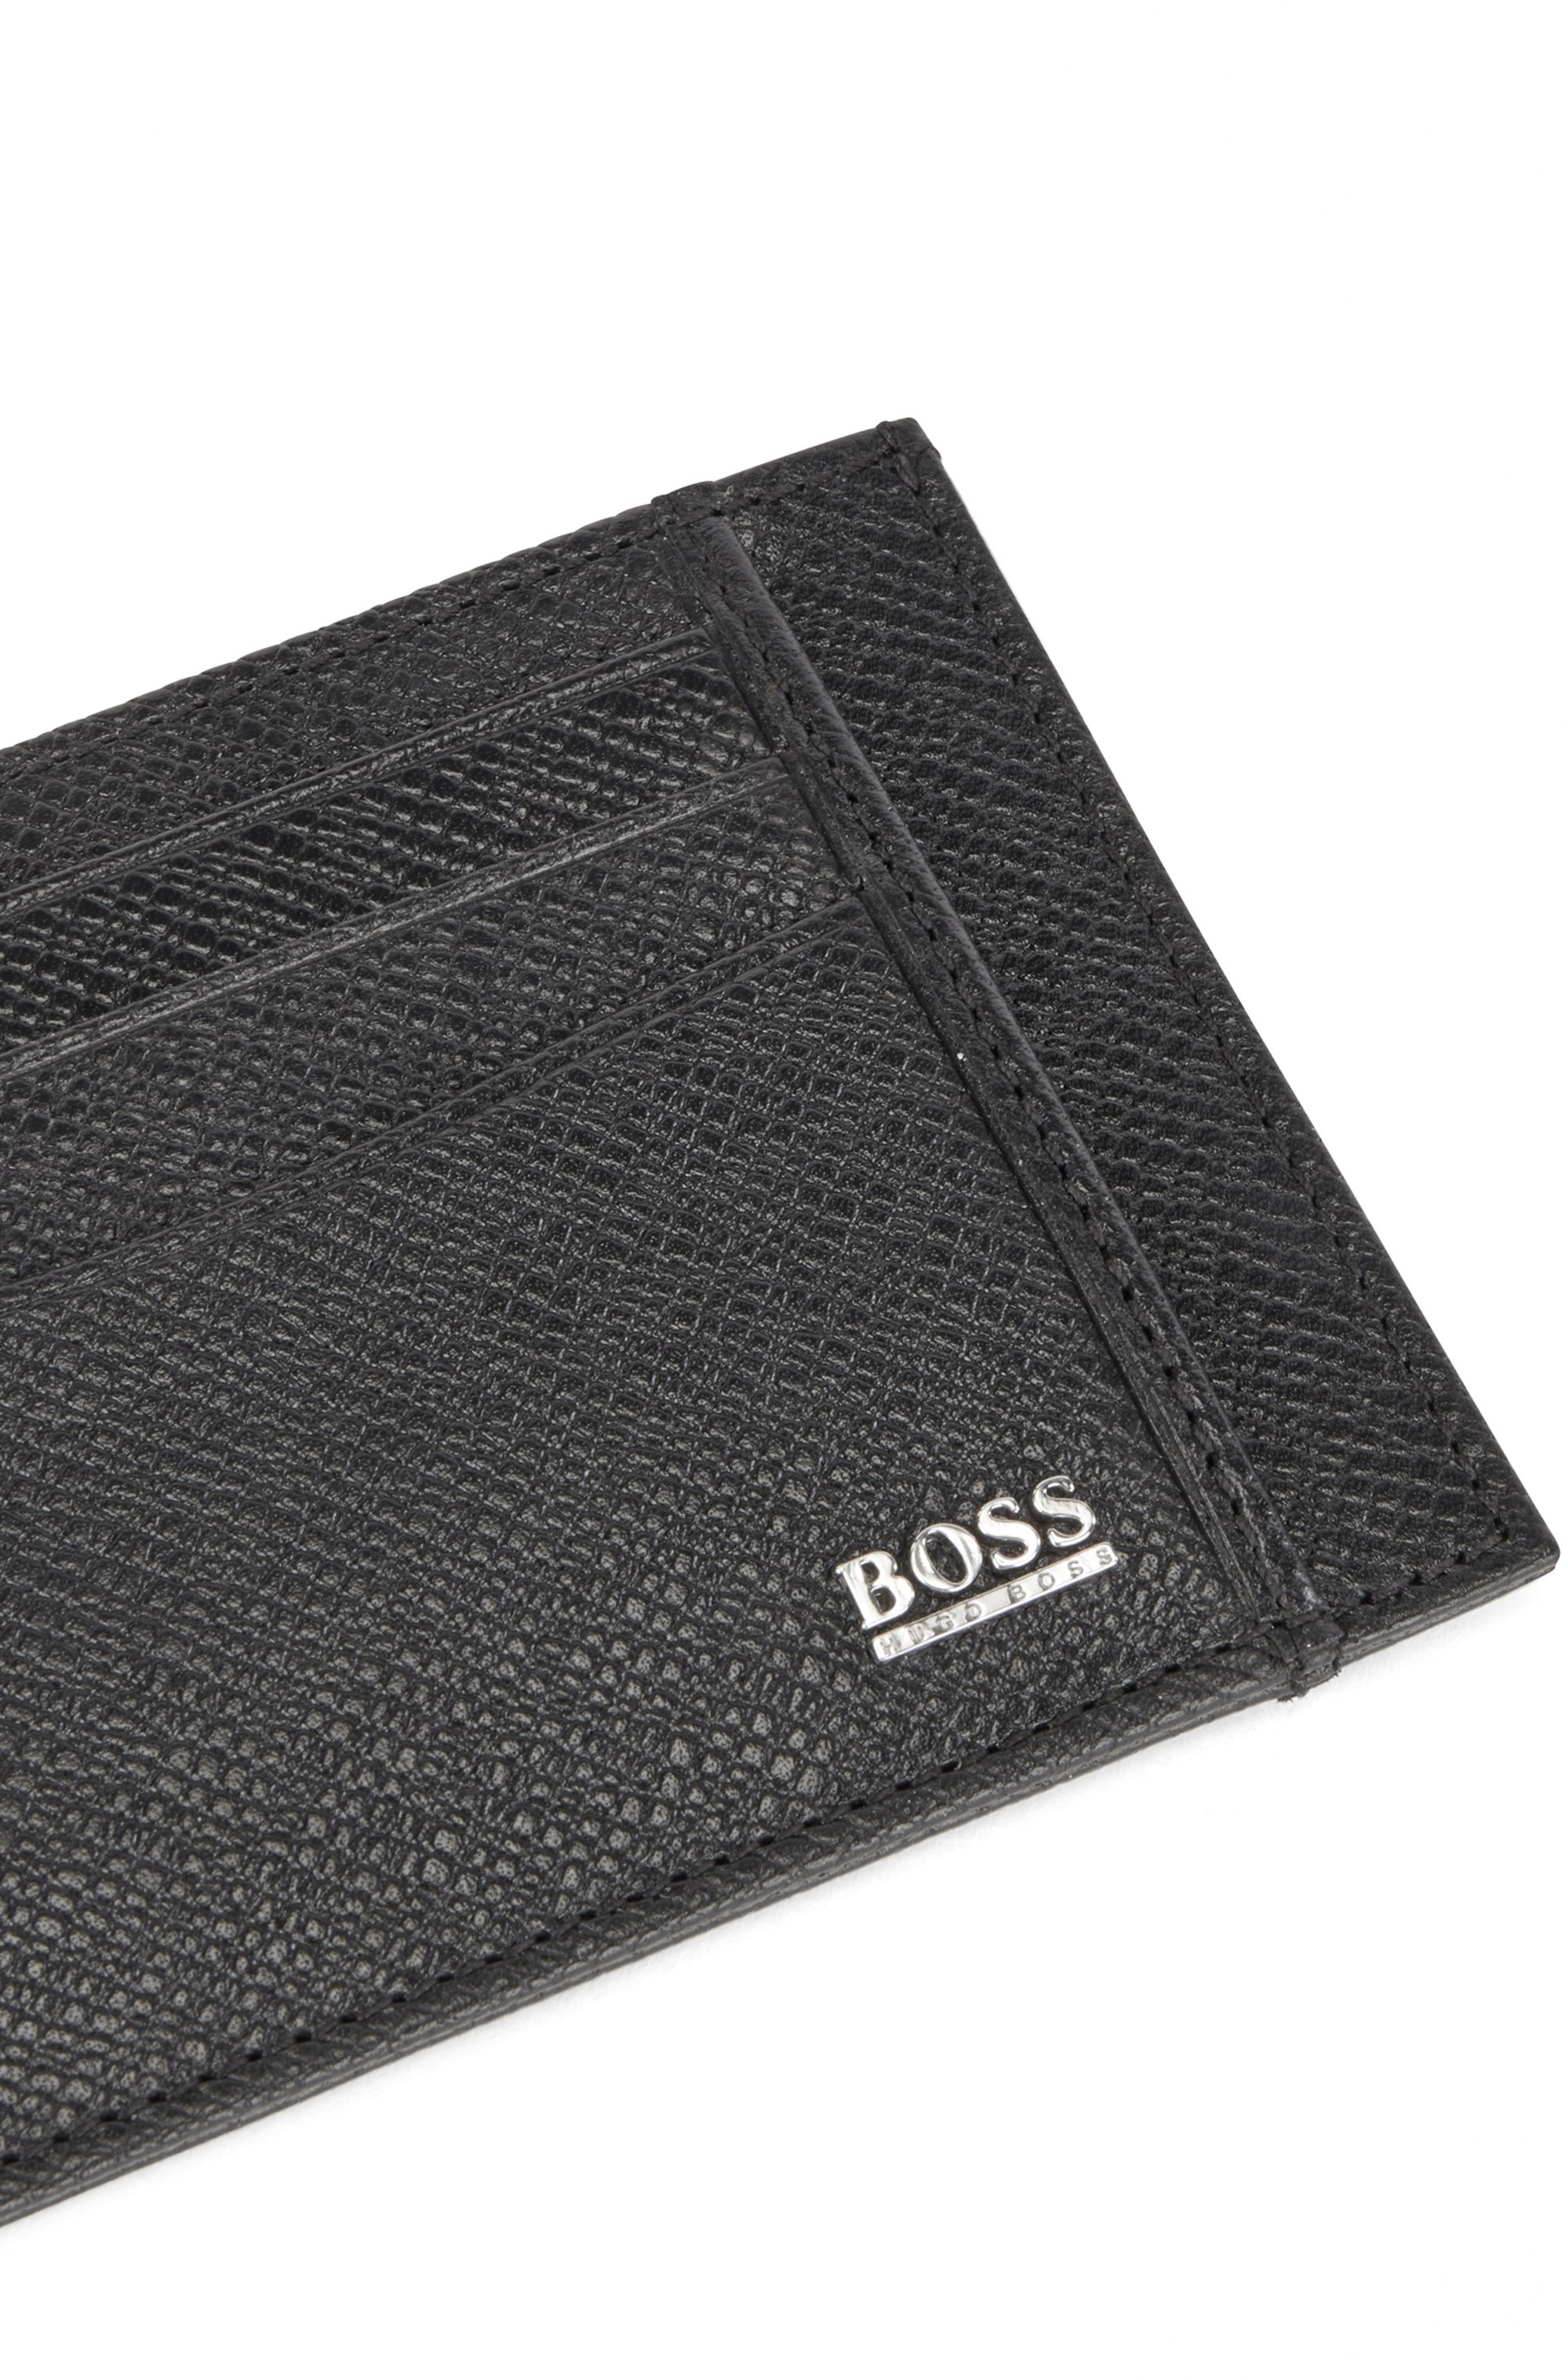 Signature Collection card holder in embossed Italian leather